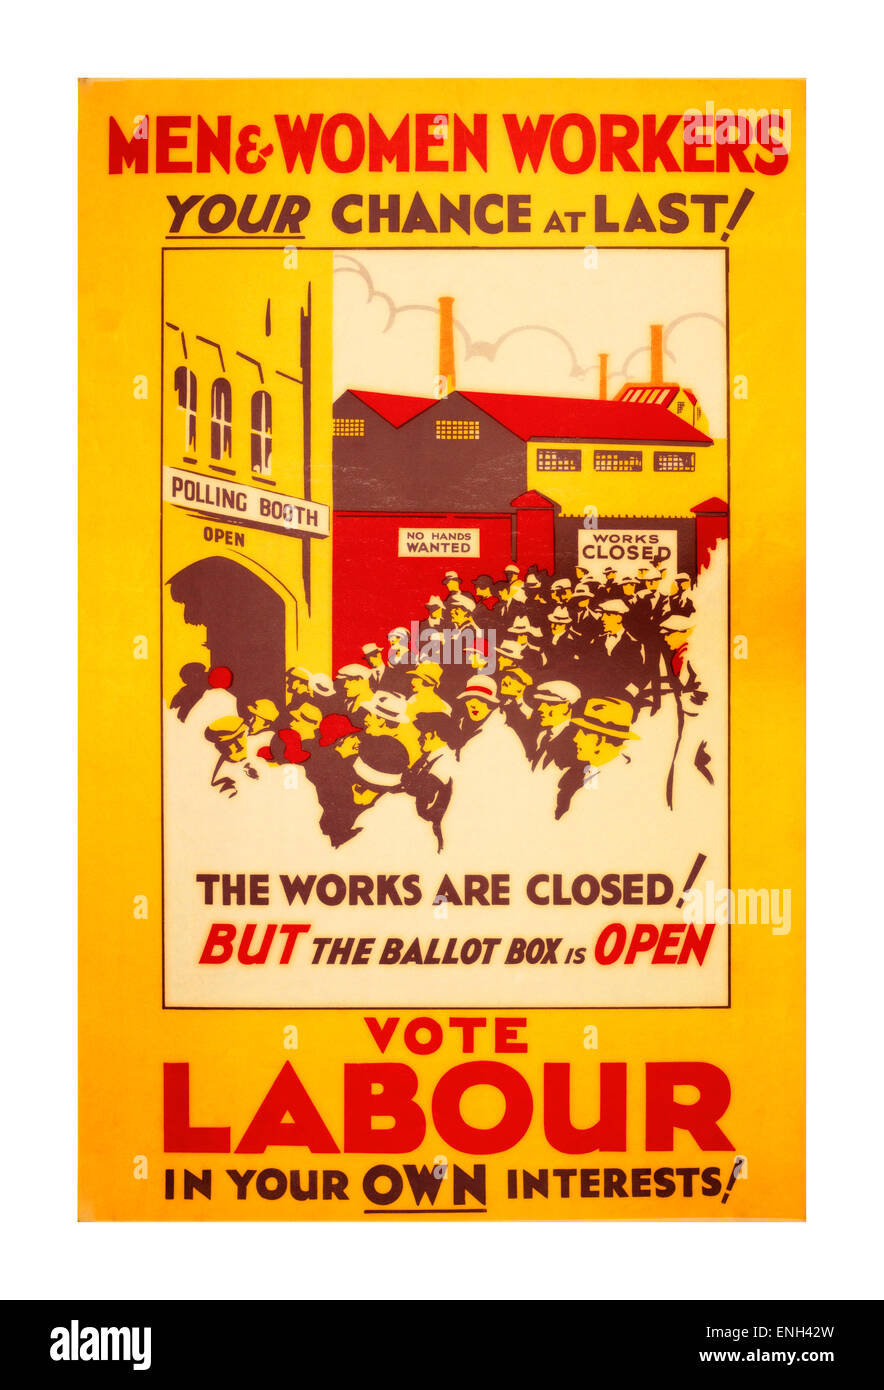 Vintage Labour Party political poster campaign in 1929 appealing to Men Women and Workers to use the ballot box - Stock Image